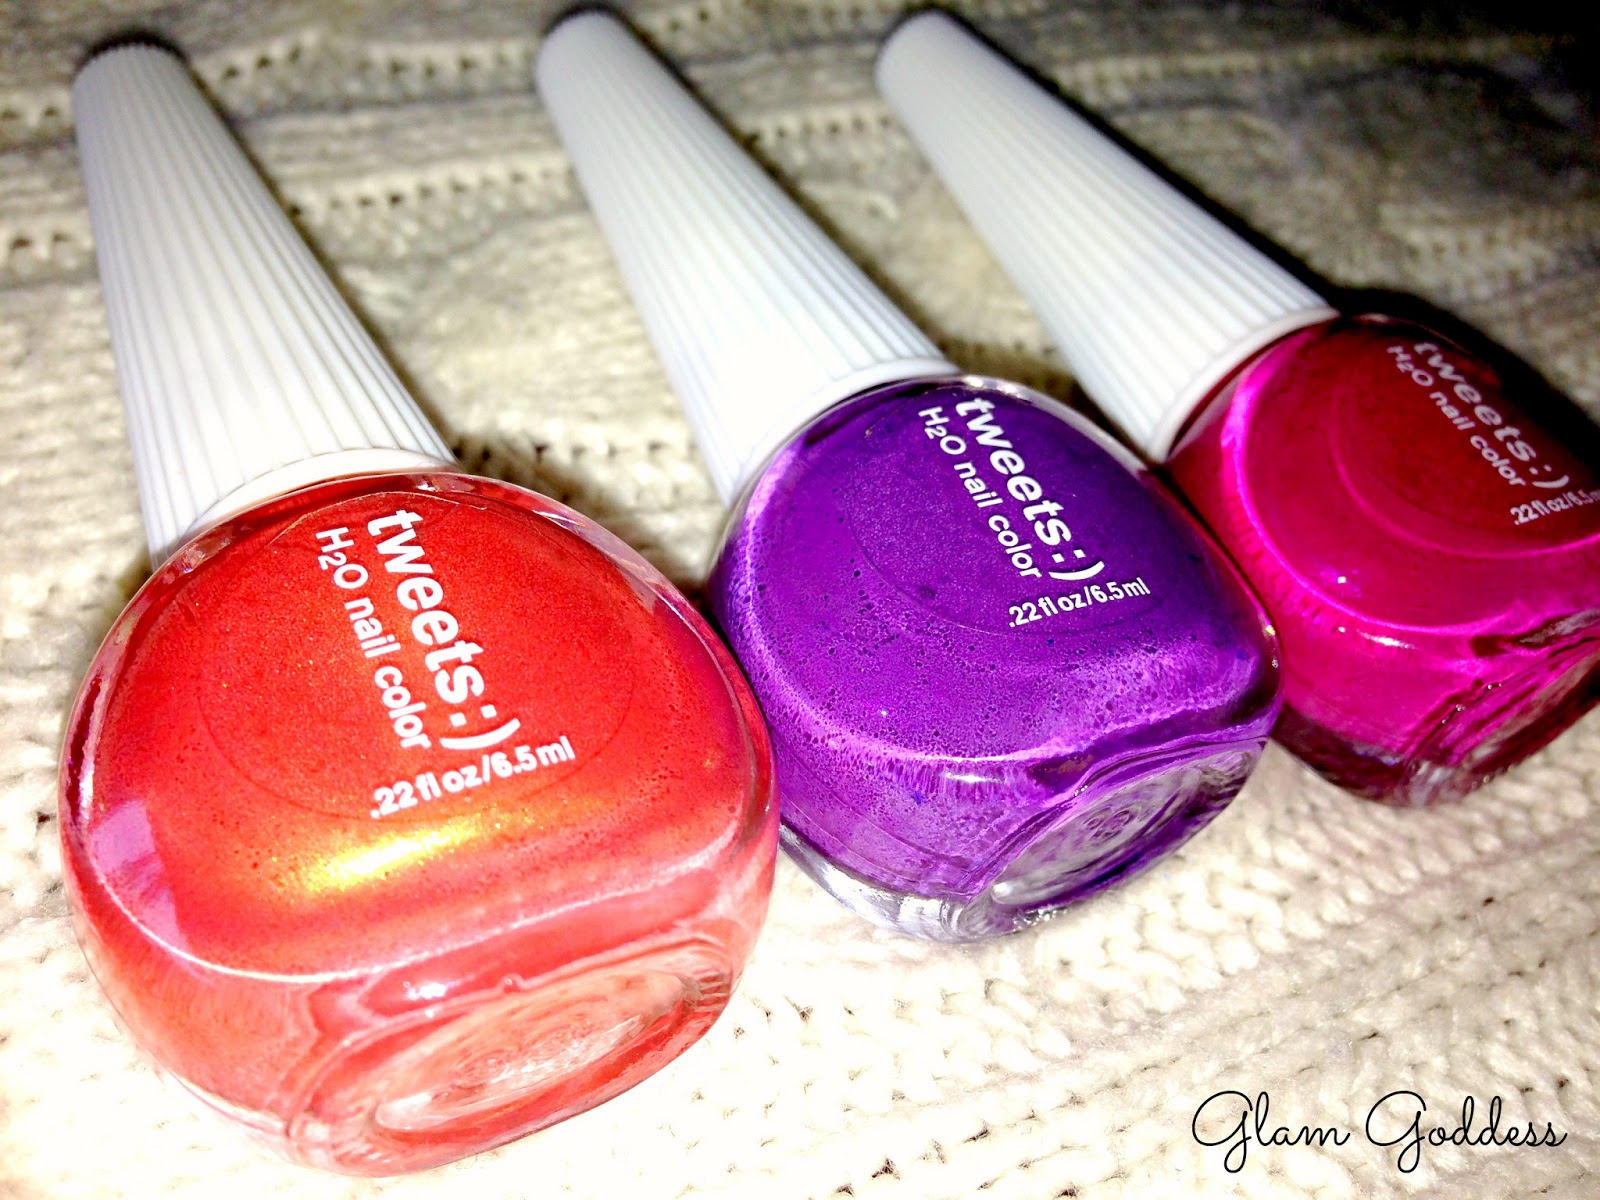 The Glam Goddess: TWEETS Nail Polish Review/Swatchs